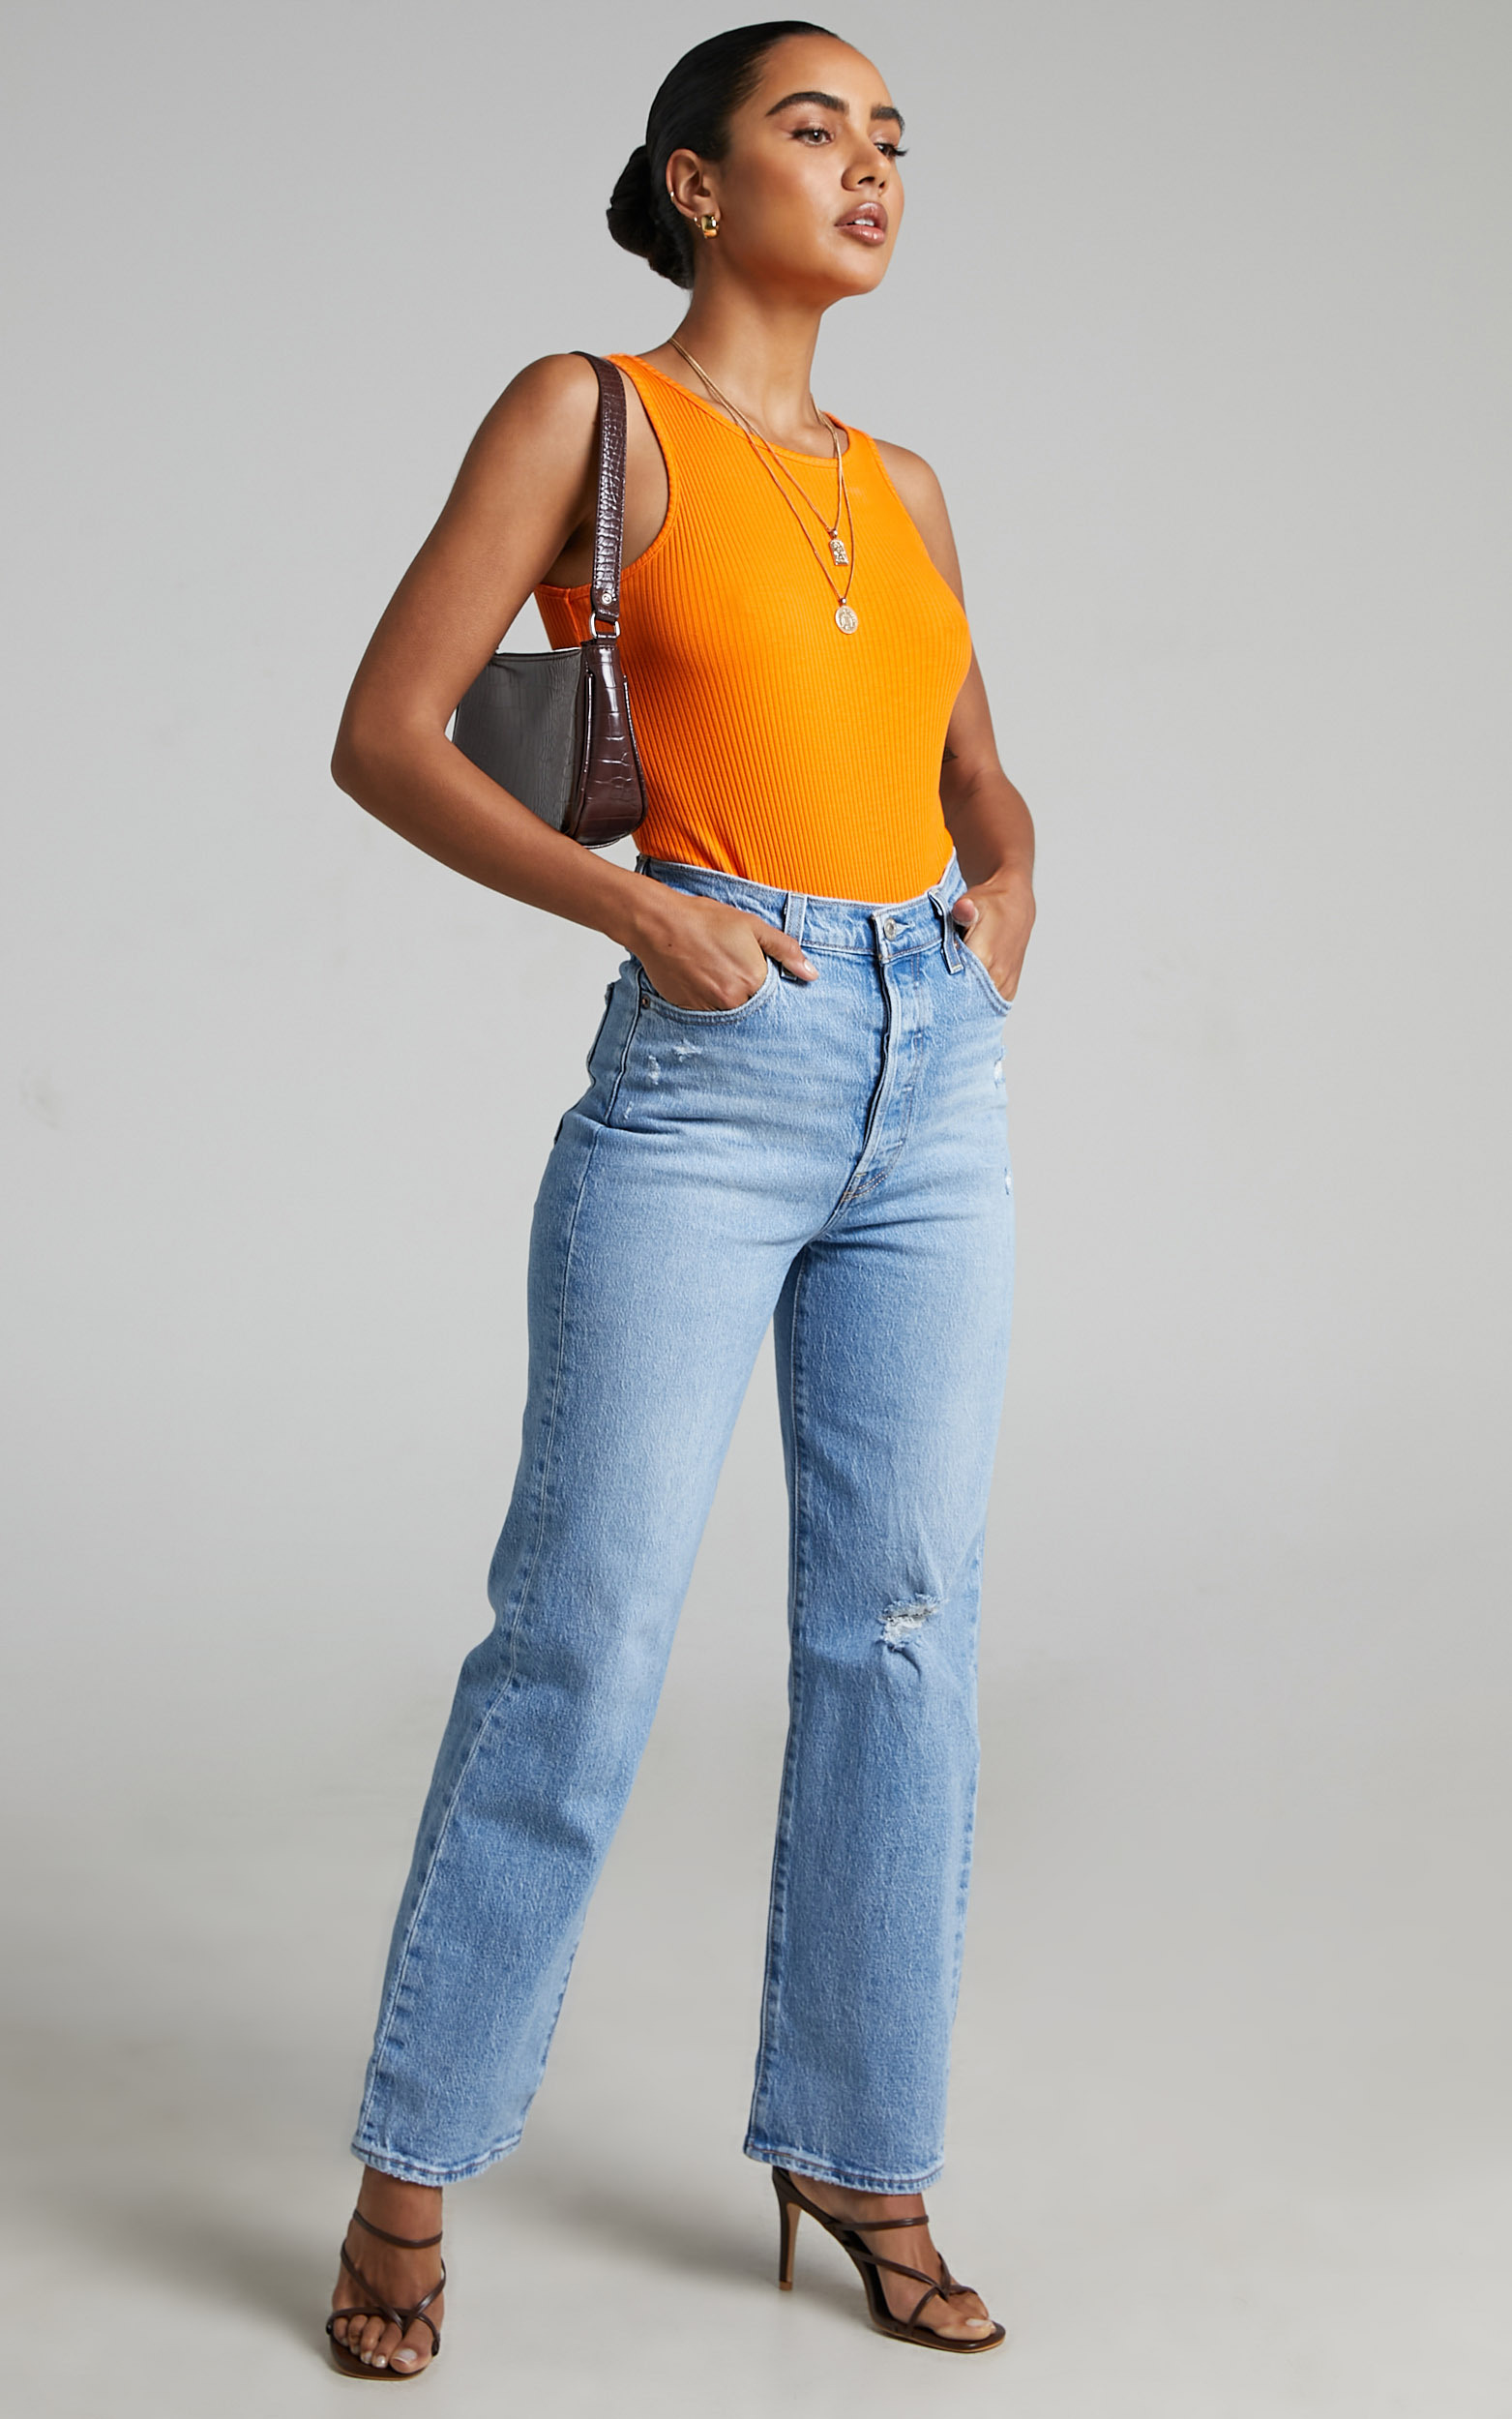 Levis - Ribcage Straight Jean in Samba Done - 06, BLU1, hi-res image number null